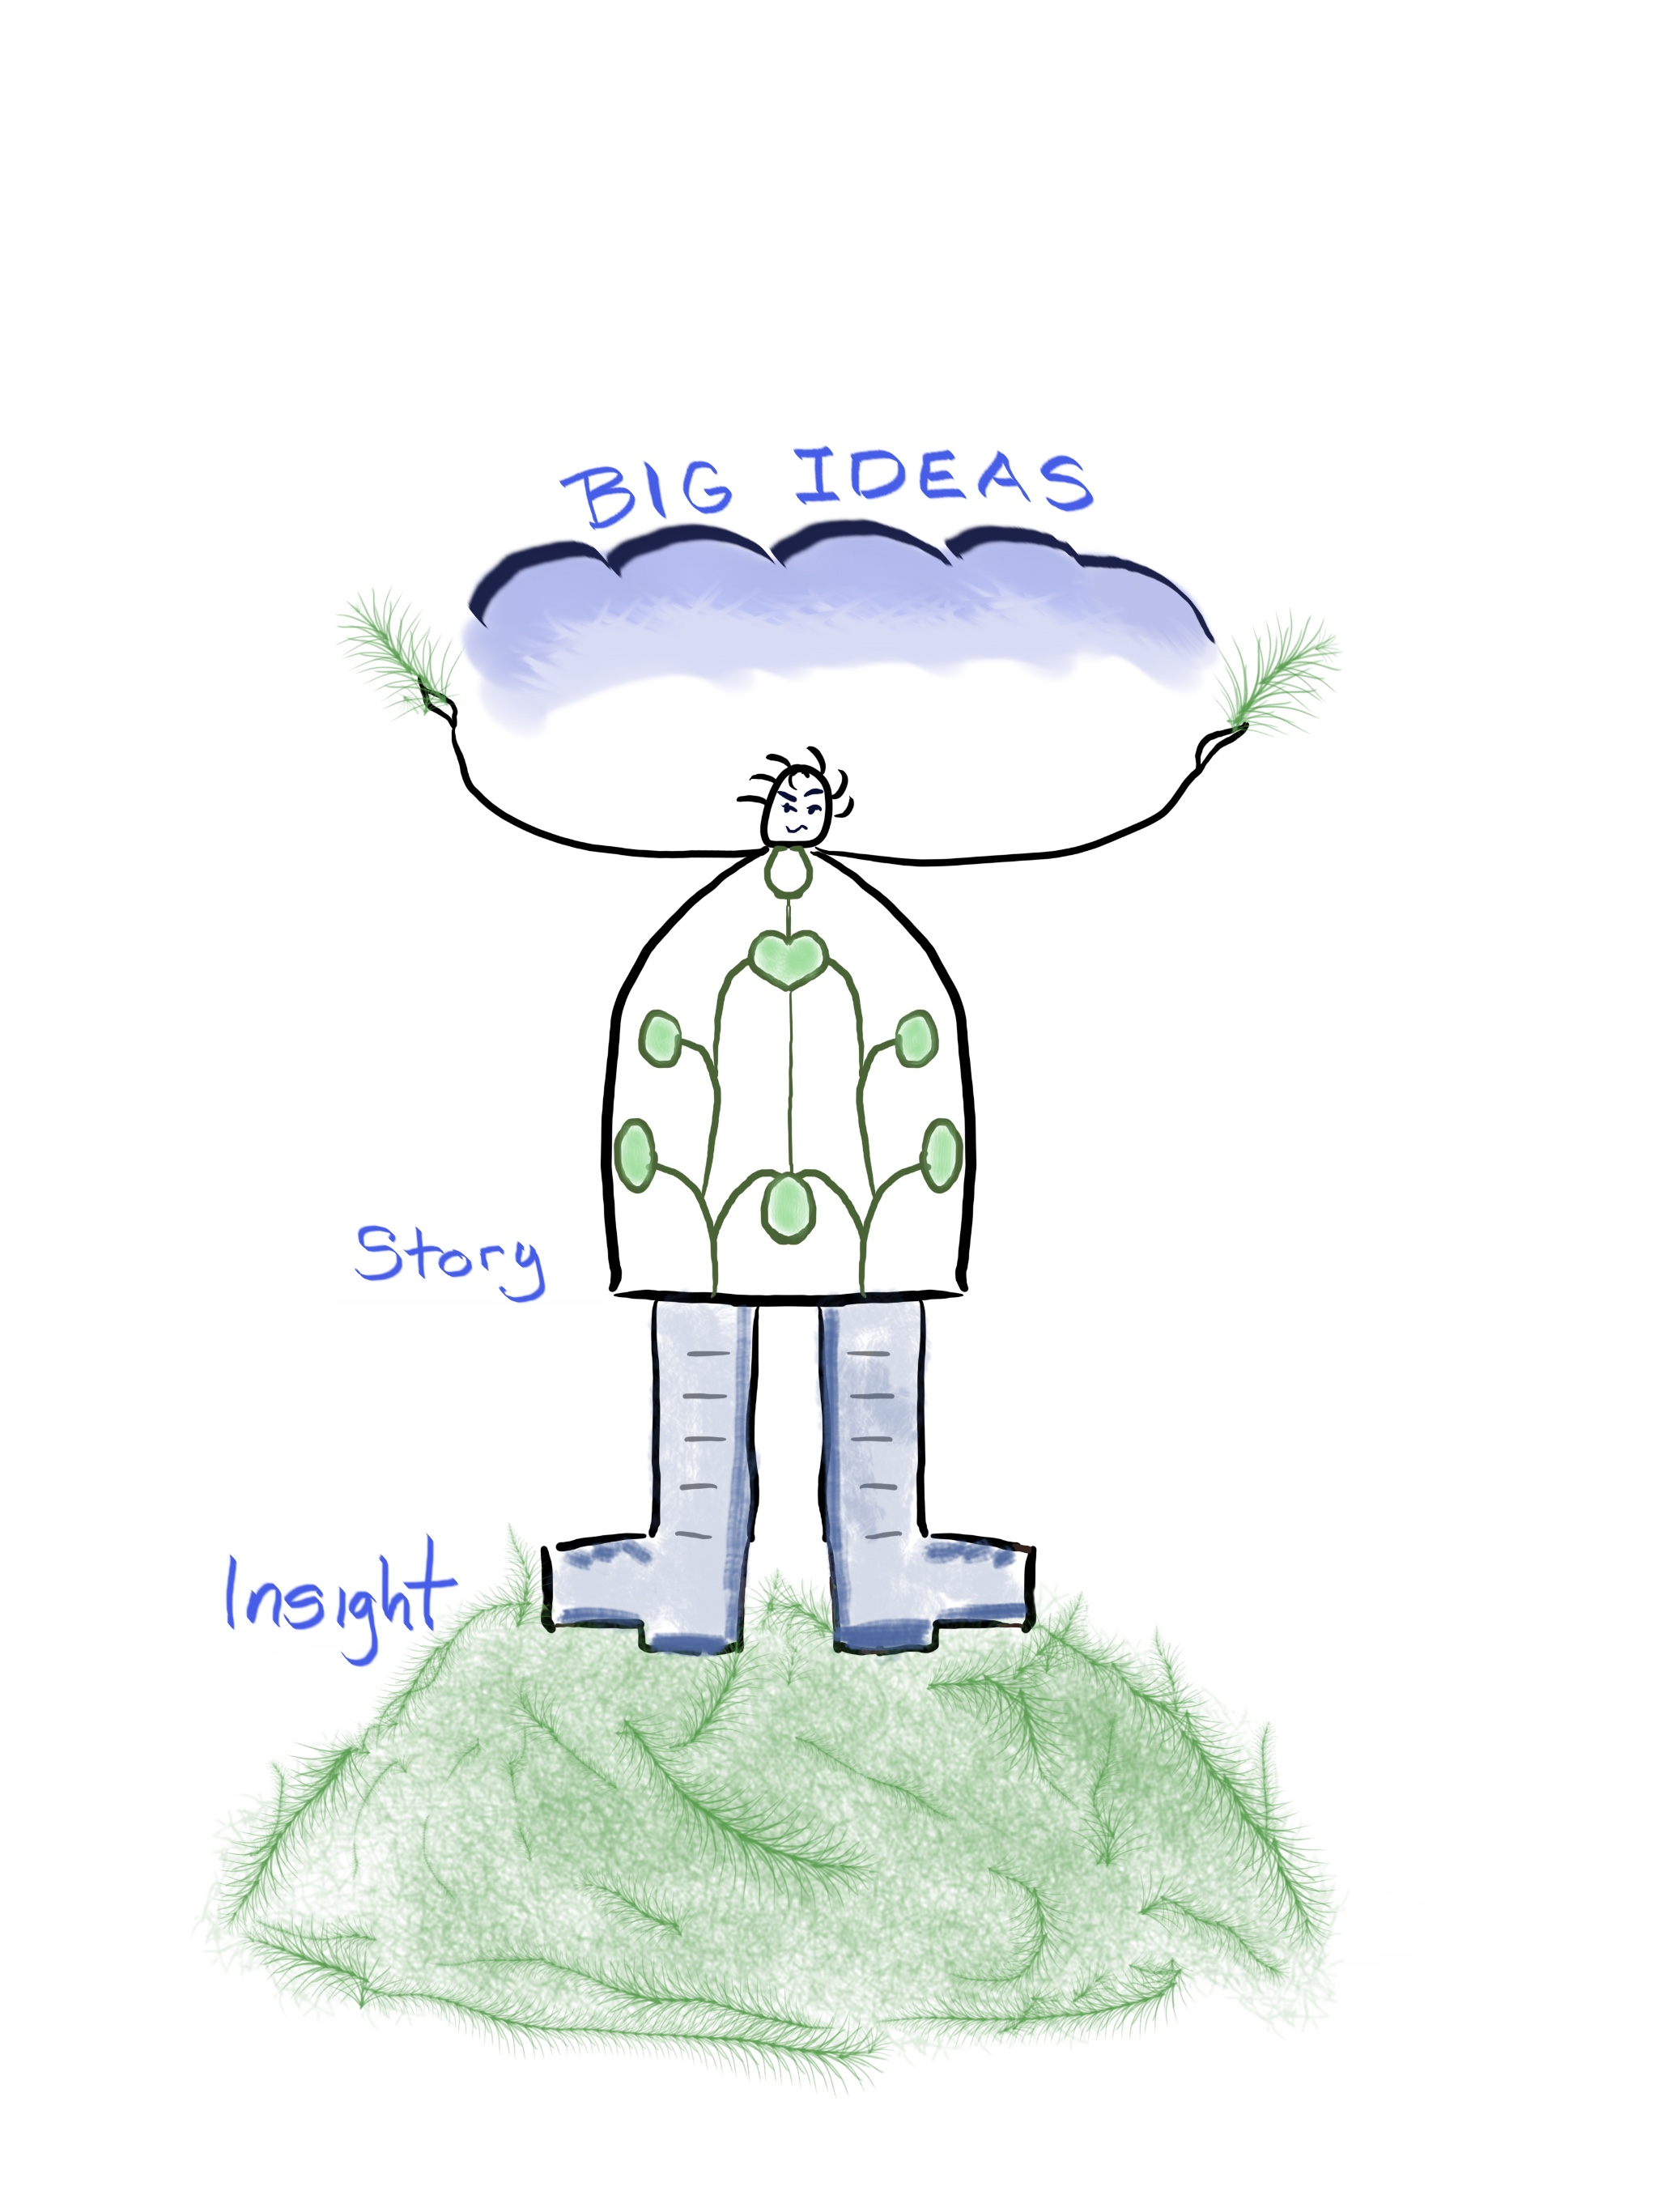 Big Ideas Story Map of a persons body